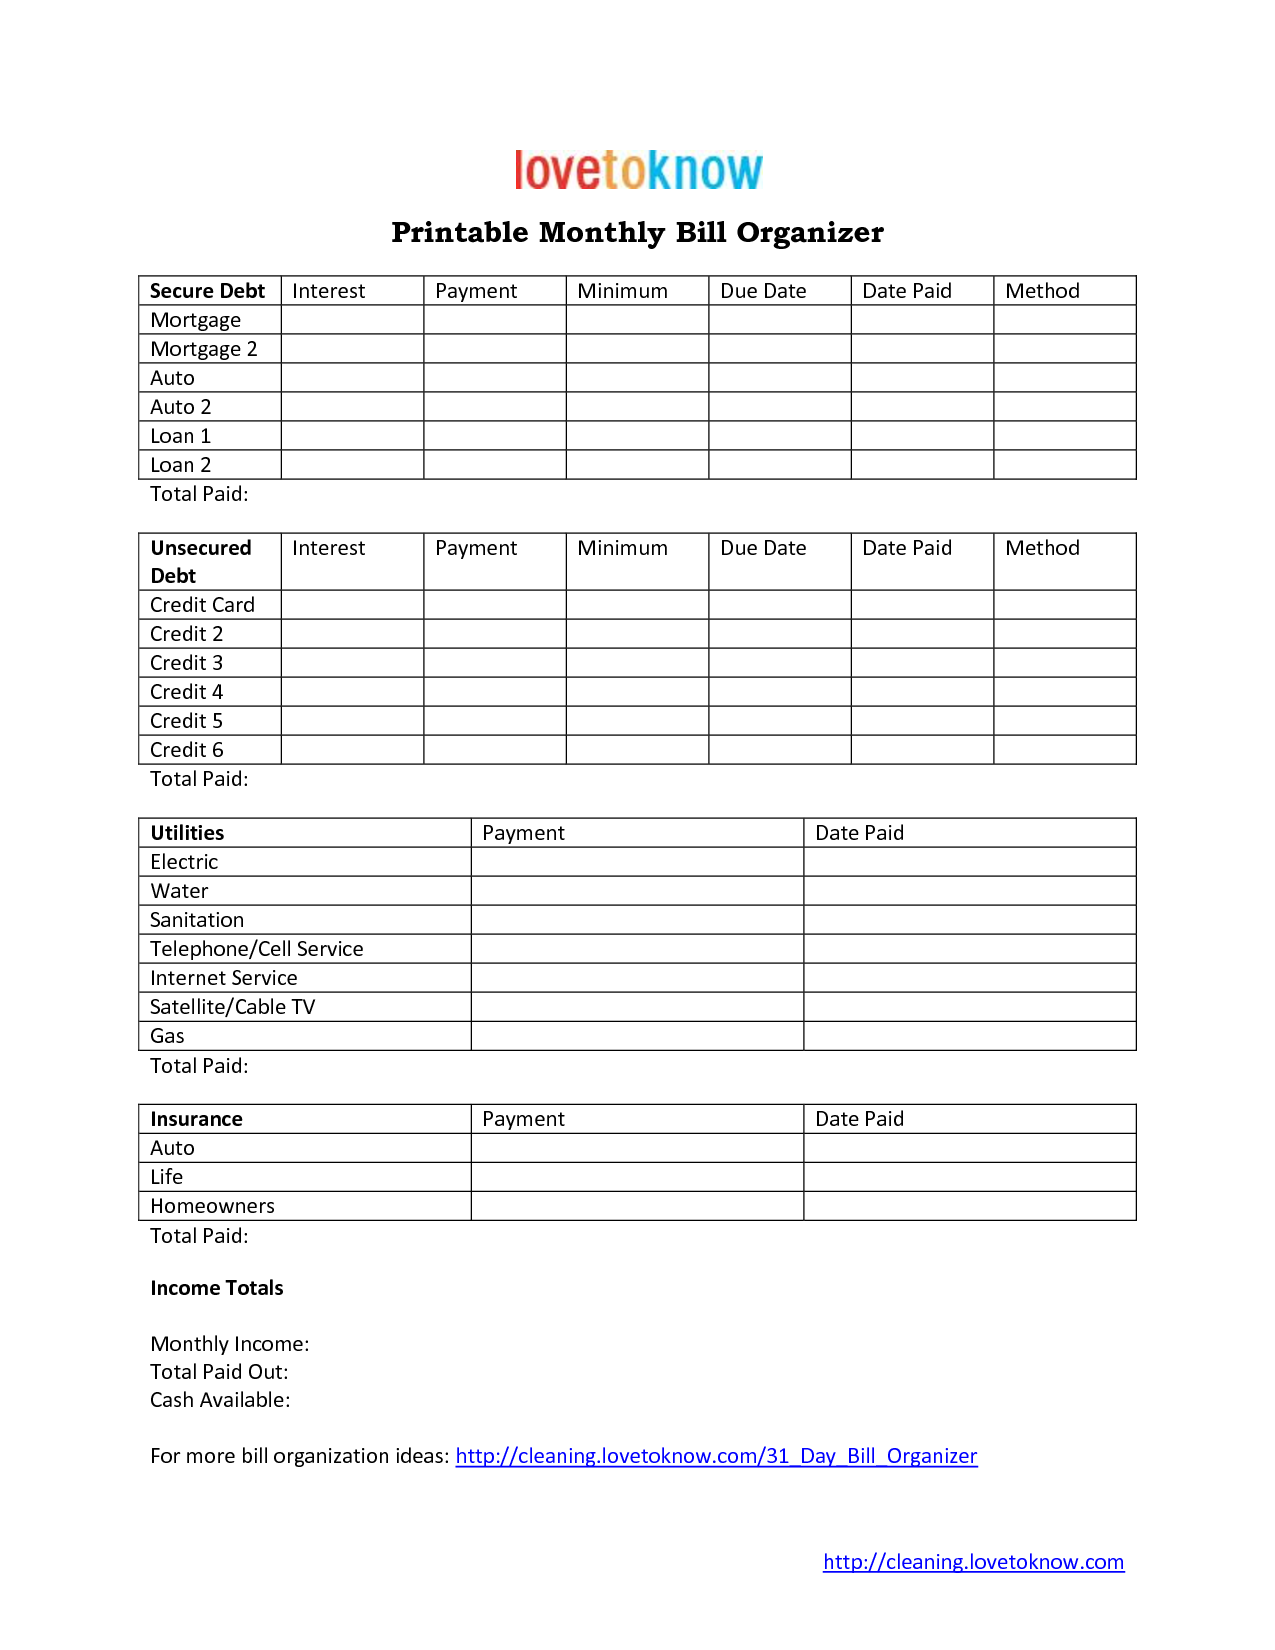 5 Images of Monthly Bill Organizer Printable